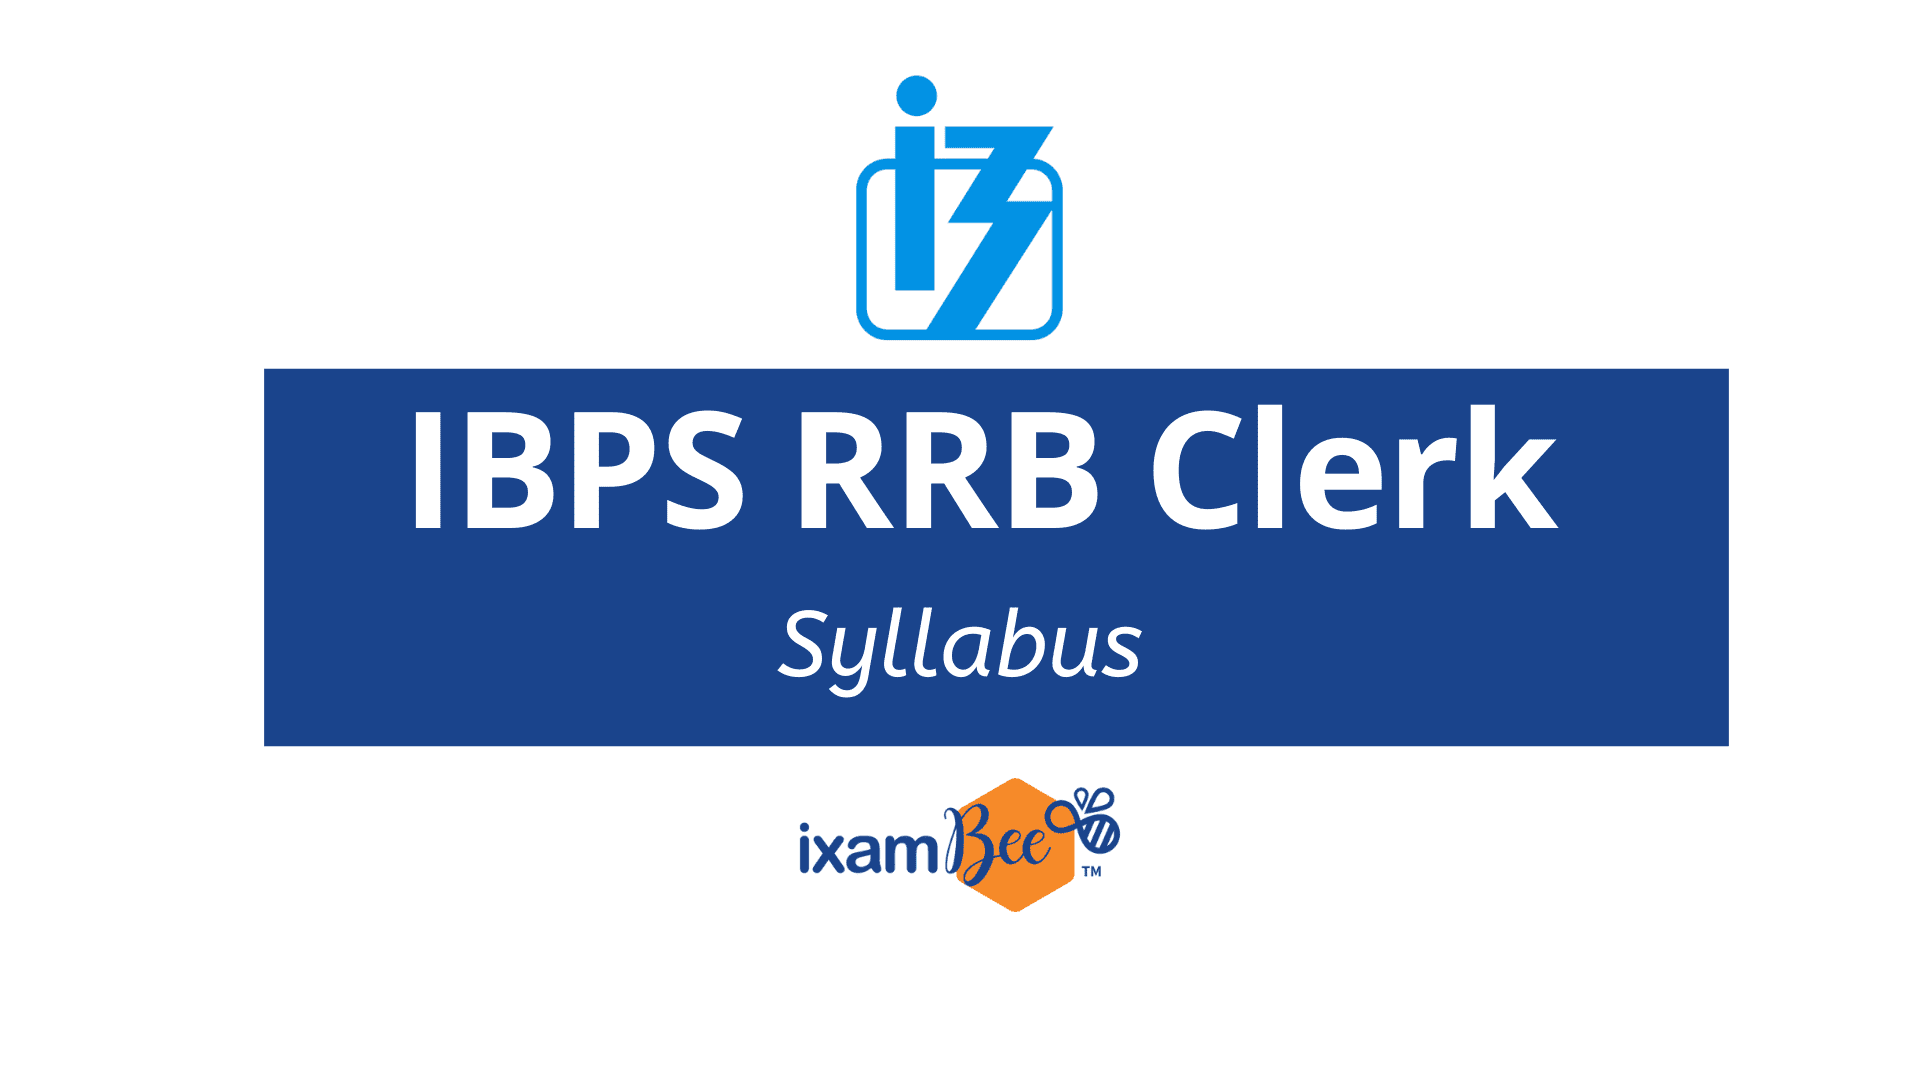 IBPS RRB Group 'B' Office Assistant Syllabus